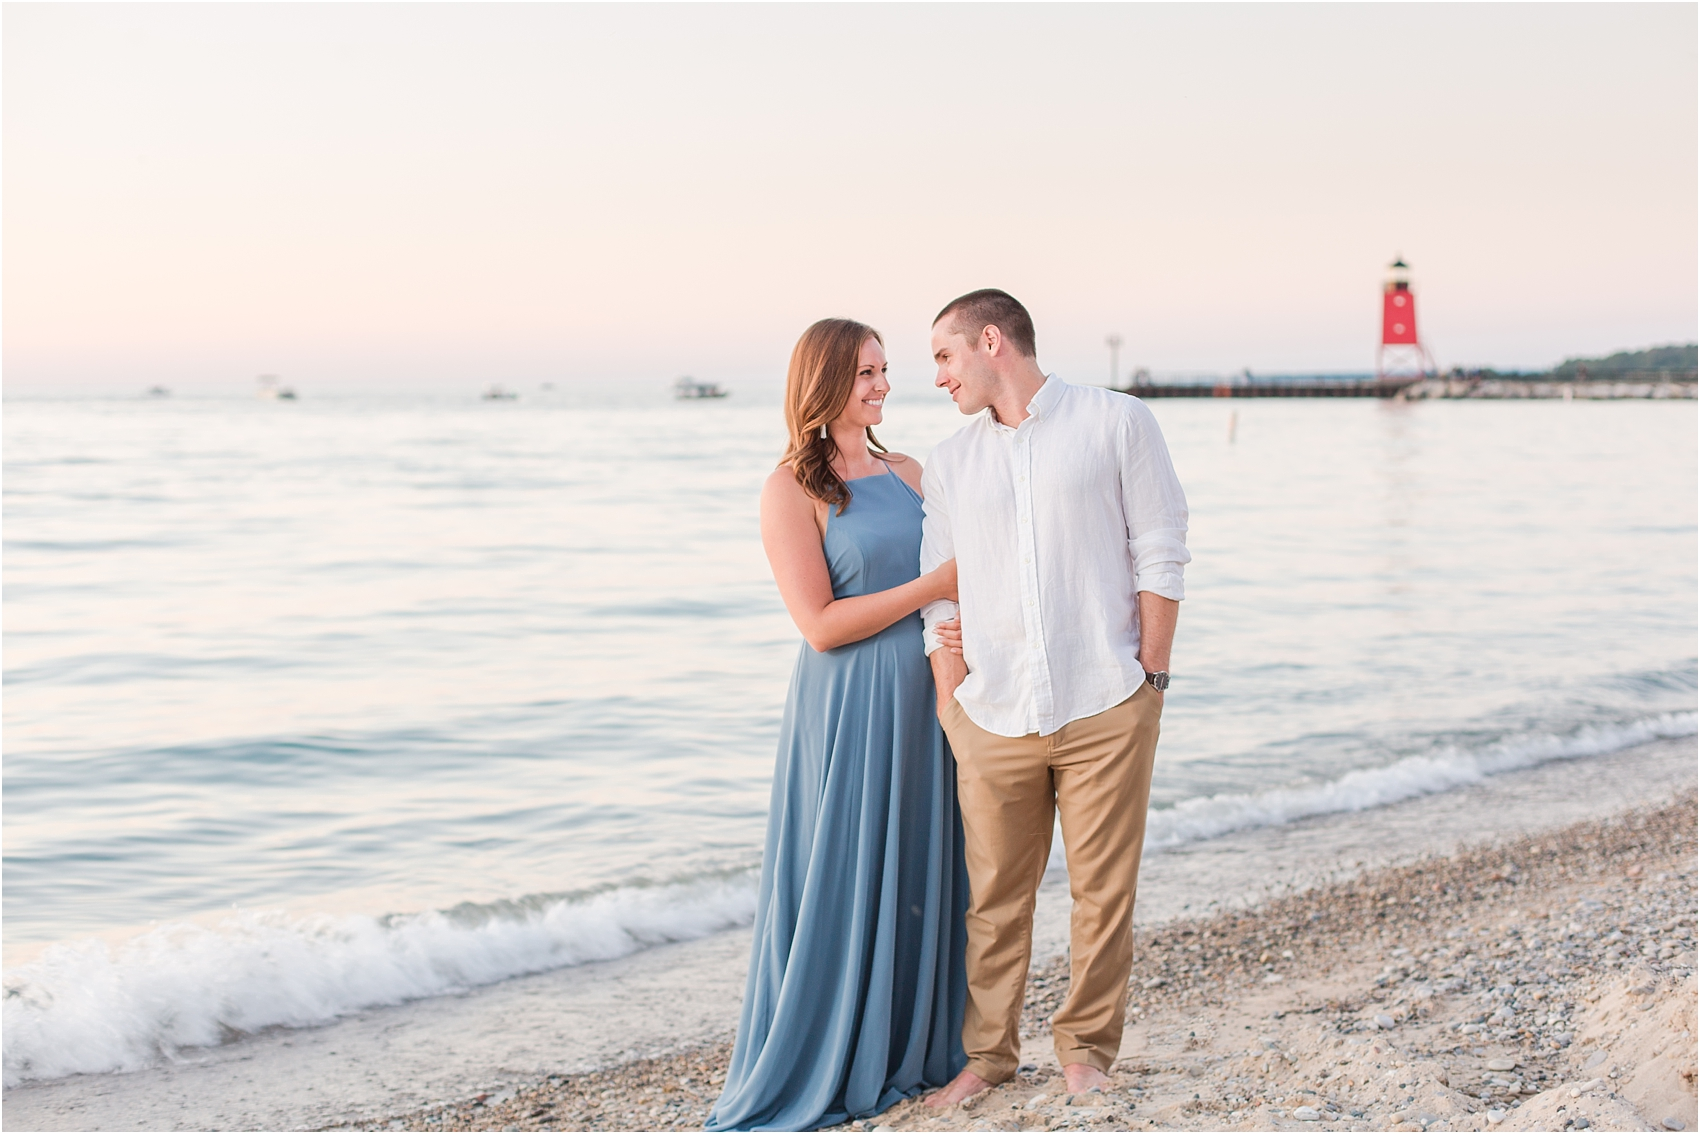 romantic-sunset-engagement-photos-at-michigan-beach-park-in-charlevoix-mi-by-courtney-carolyn-photography_0004.jpg